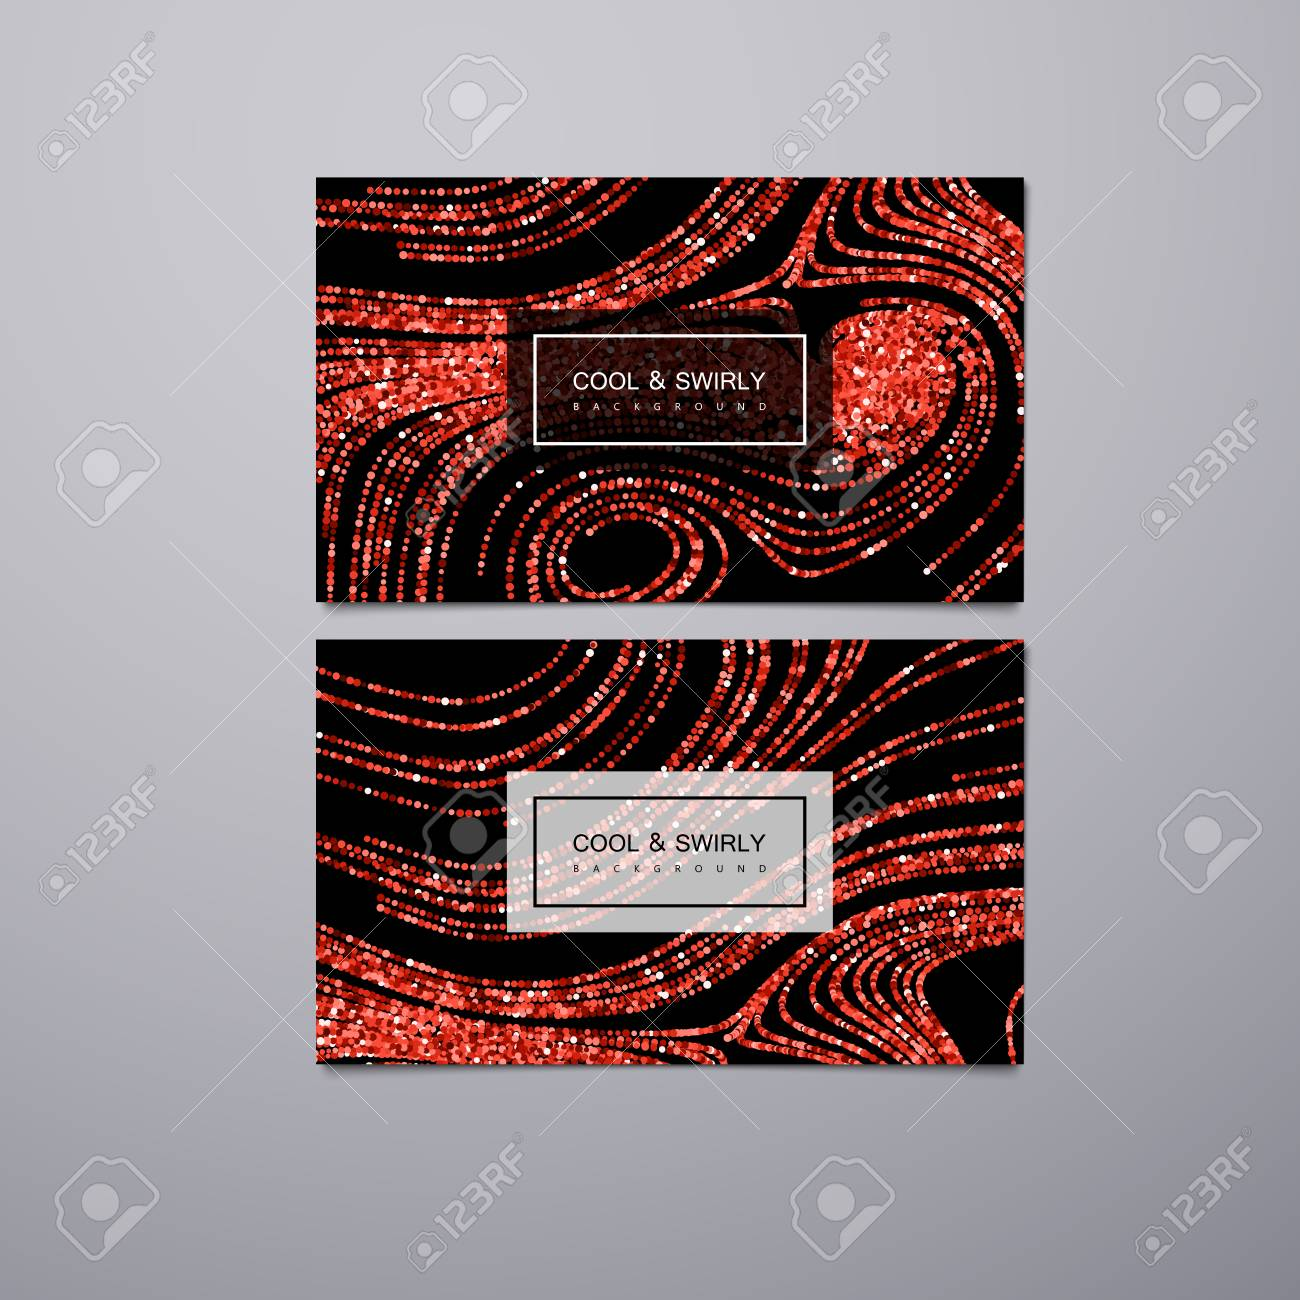 Greeting Invitation Or Business Cards Design Template With Swirled Glittering Stripes Vector Illustration Of Red Ruby Glitter Background Marble Or